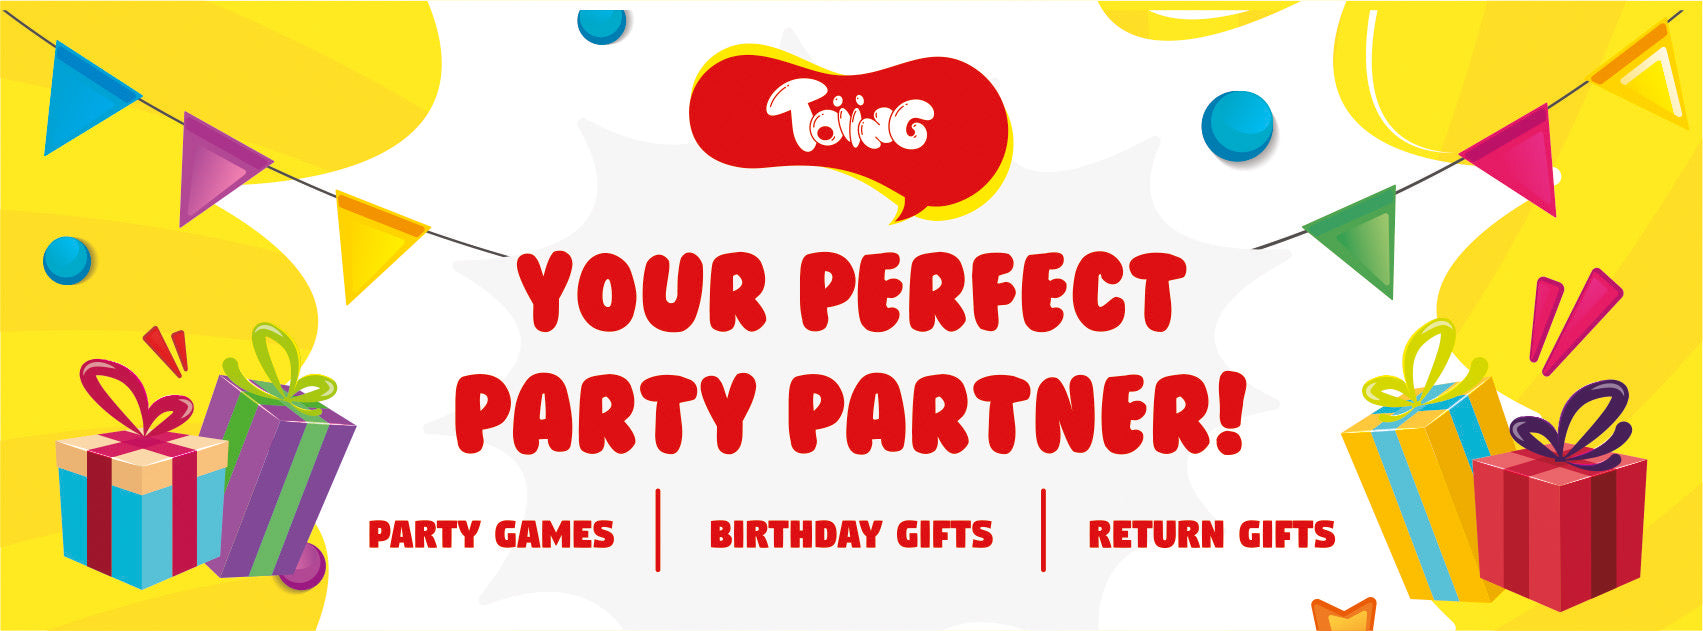 Toiing your perfect party partner